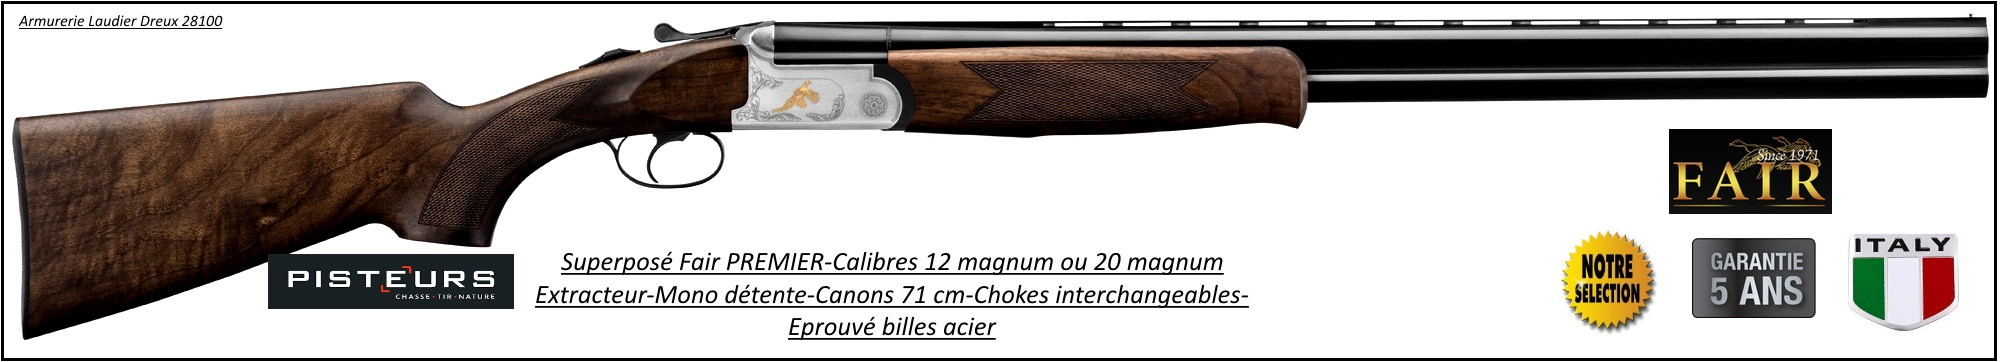 Superposés Fair premier acier Calibres 12 magnum ou 20 magnum-Extracteur-Chokes inter-Promotion